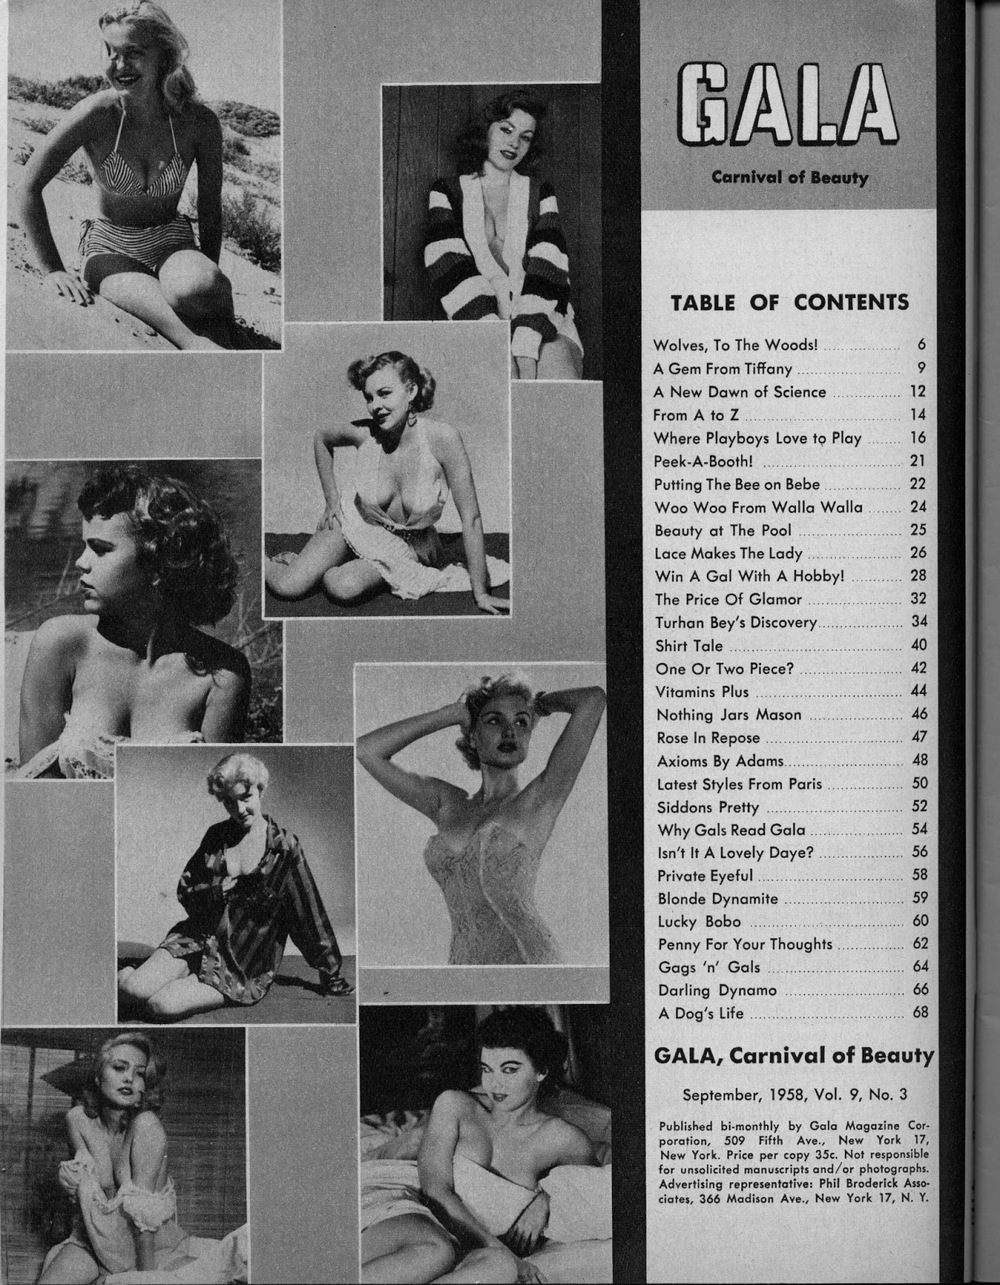 Gala  table of contents; advertisement for stag films, HPB Enterprises, Culver City, California